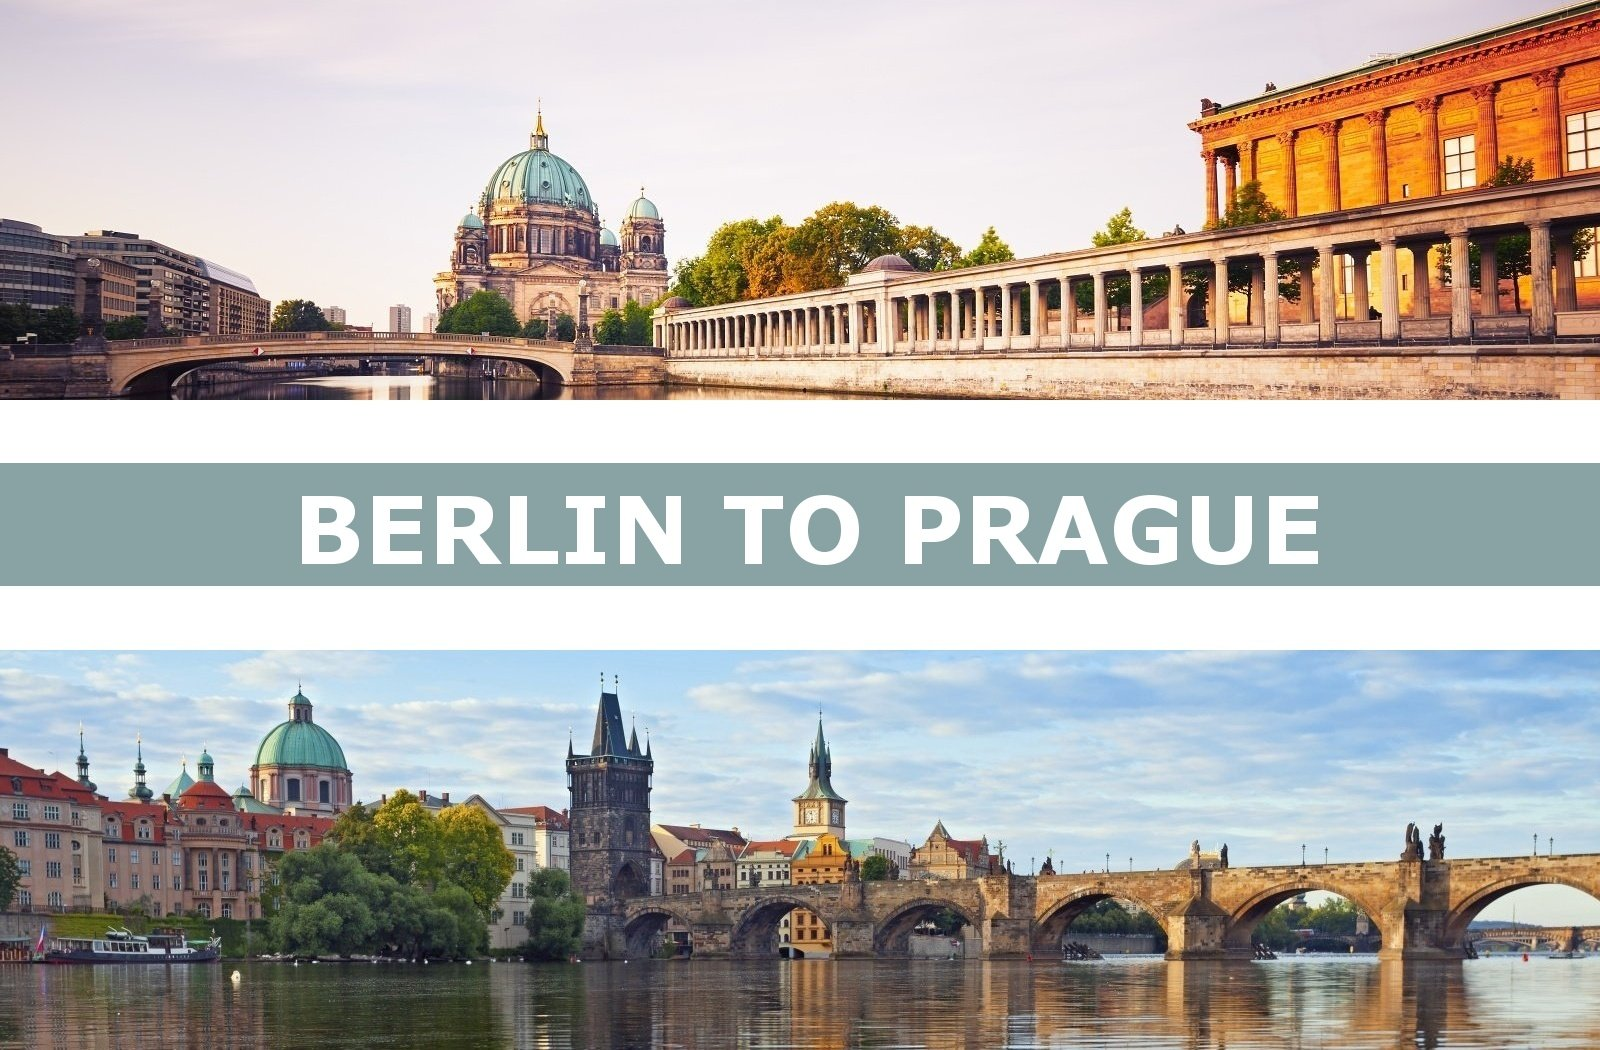 From Berlin to Prague